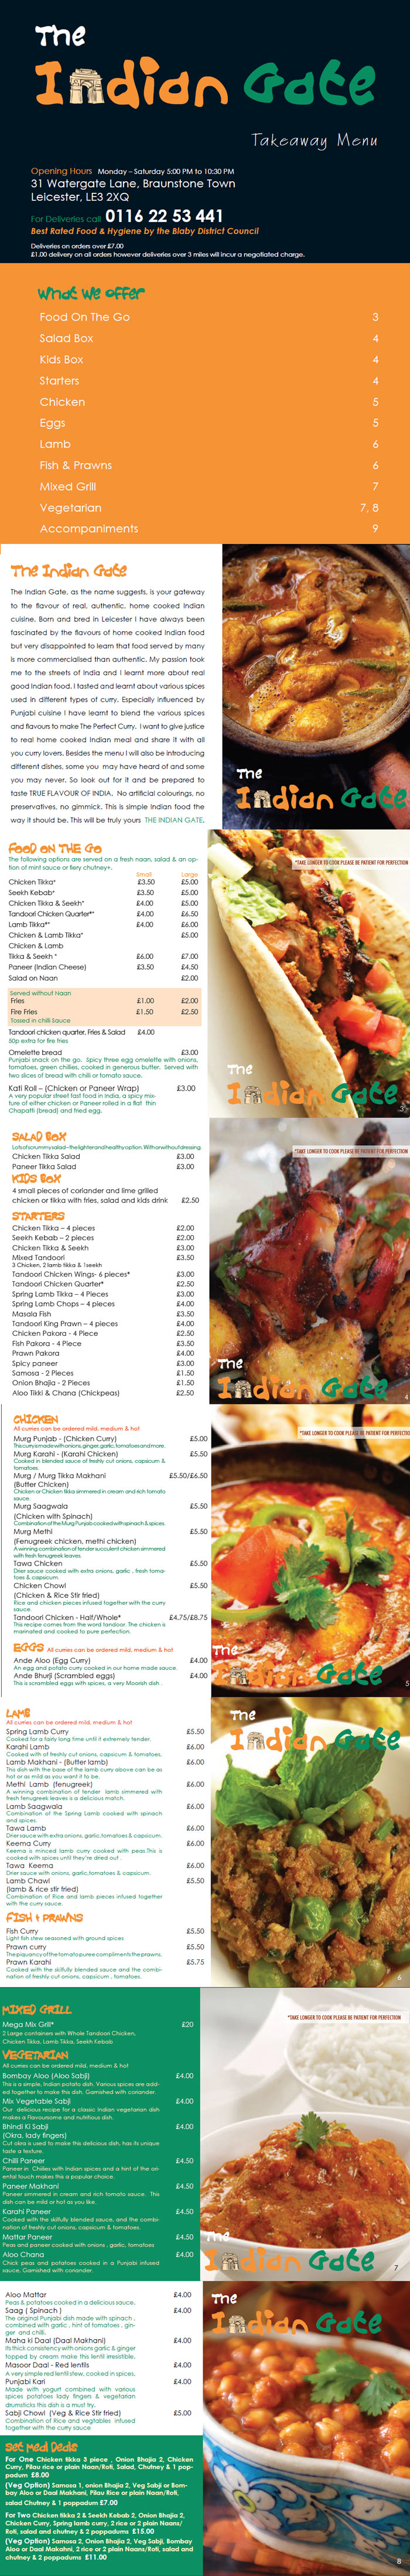 The indian gate indian restaurant on watergate lane for Cuisine of india wigston